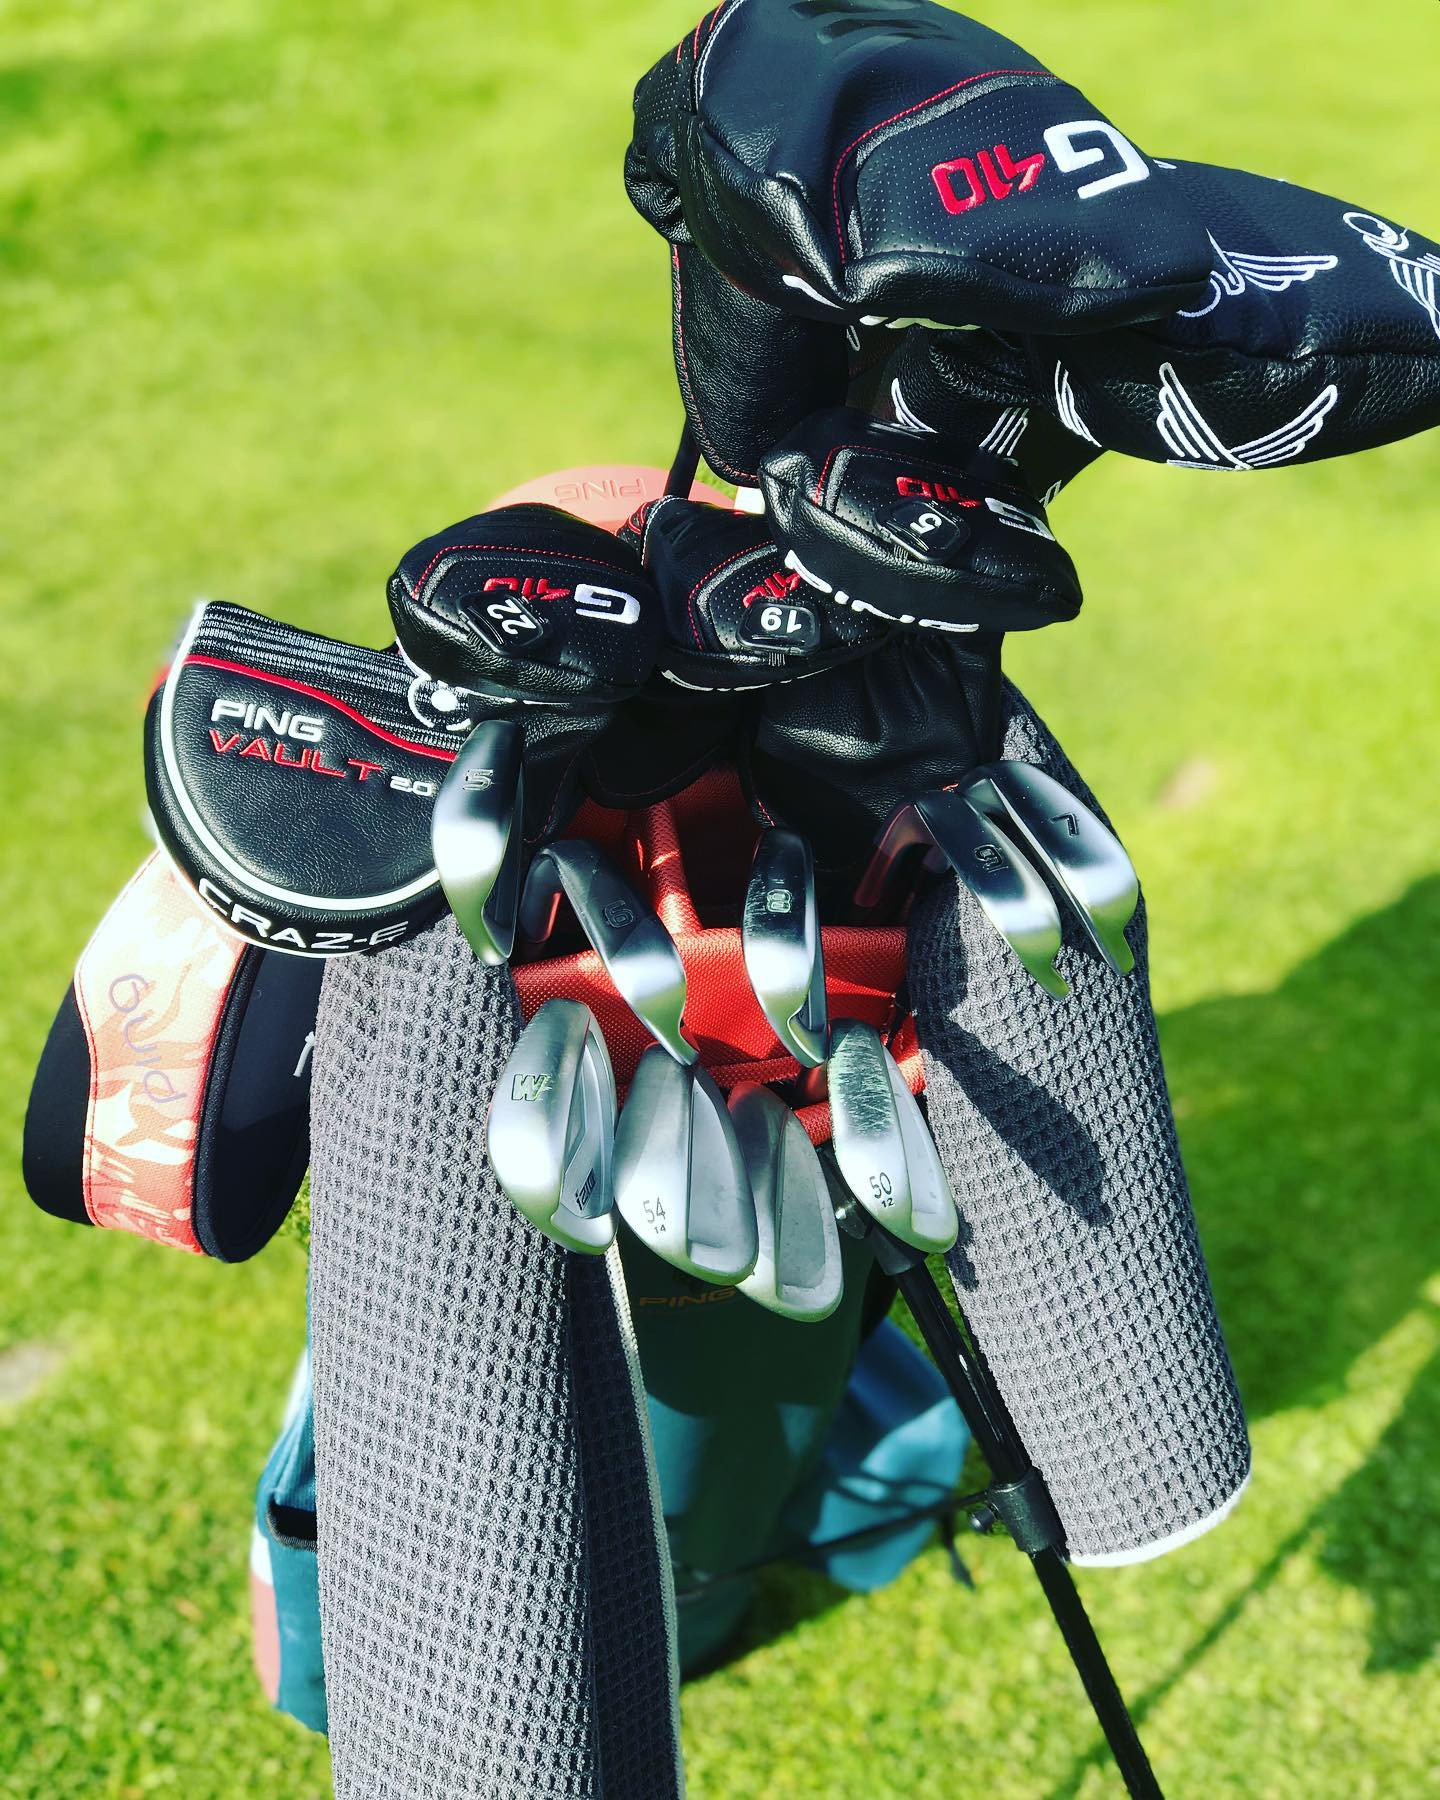 FULL BAG CLUB FITTING WITH PING GOLF